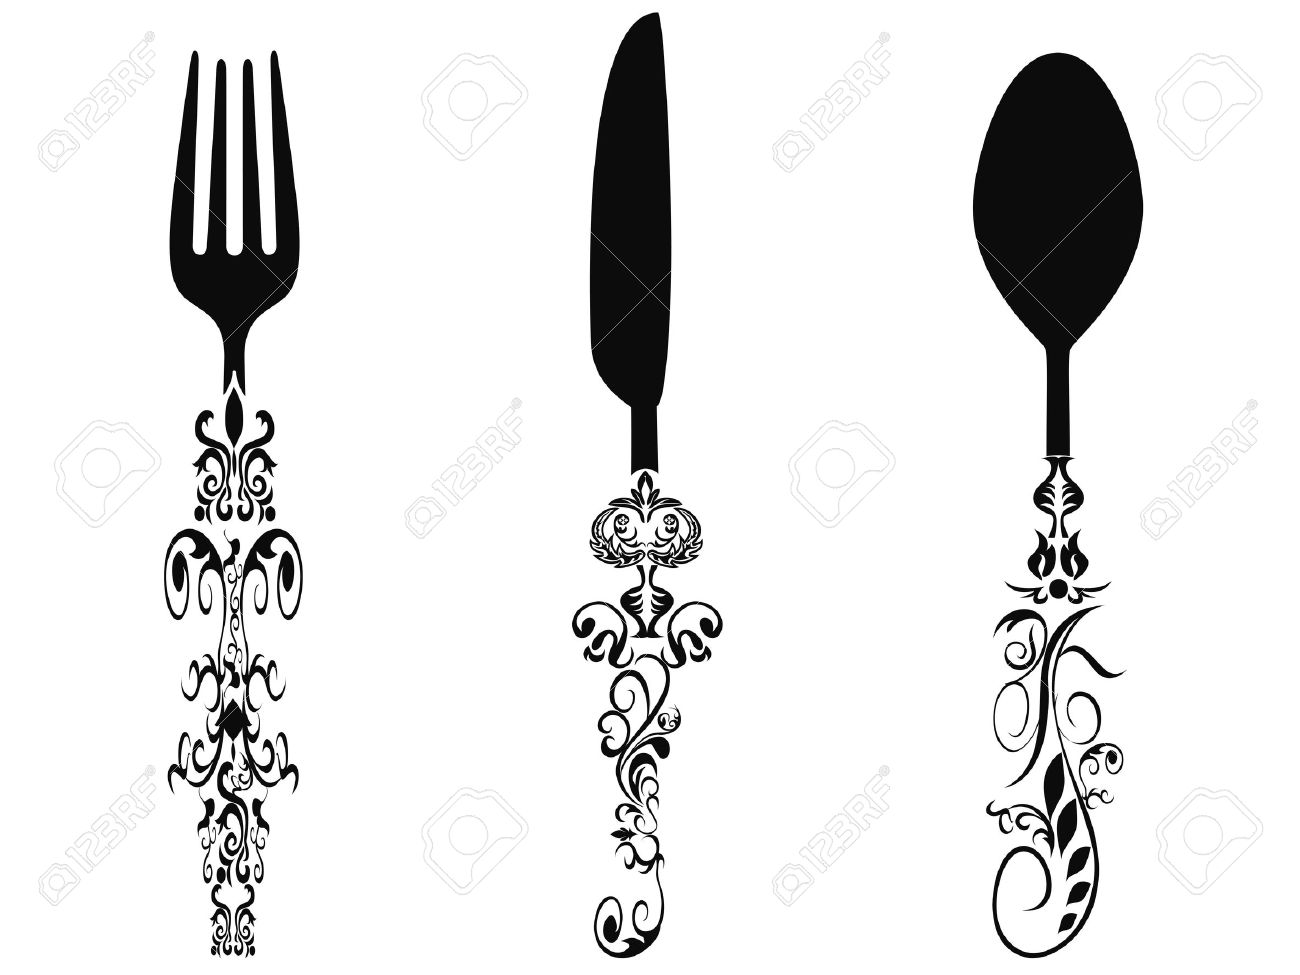 1300x975 Cutlery Clipart Ornate